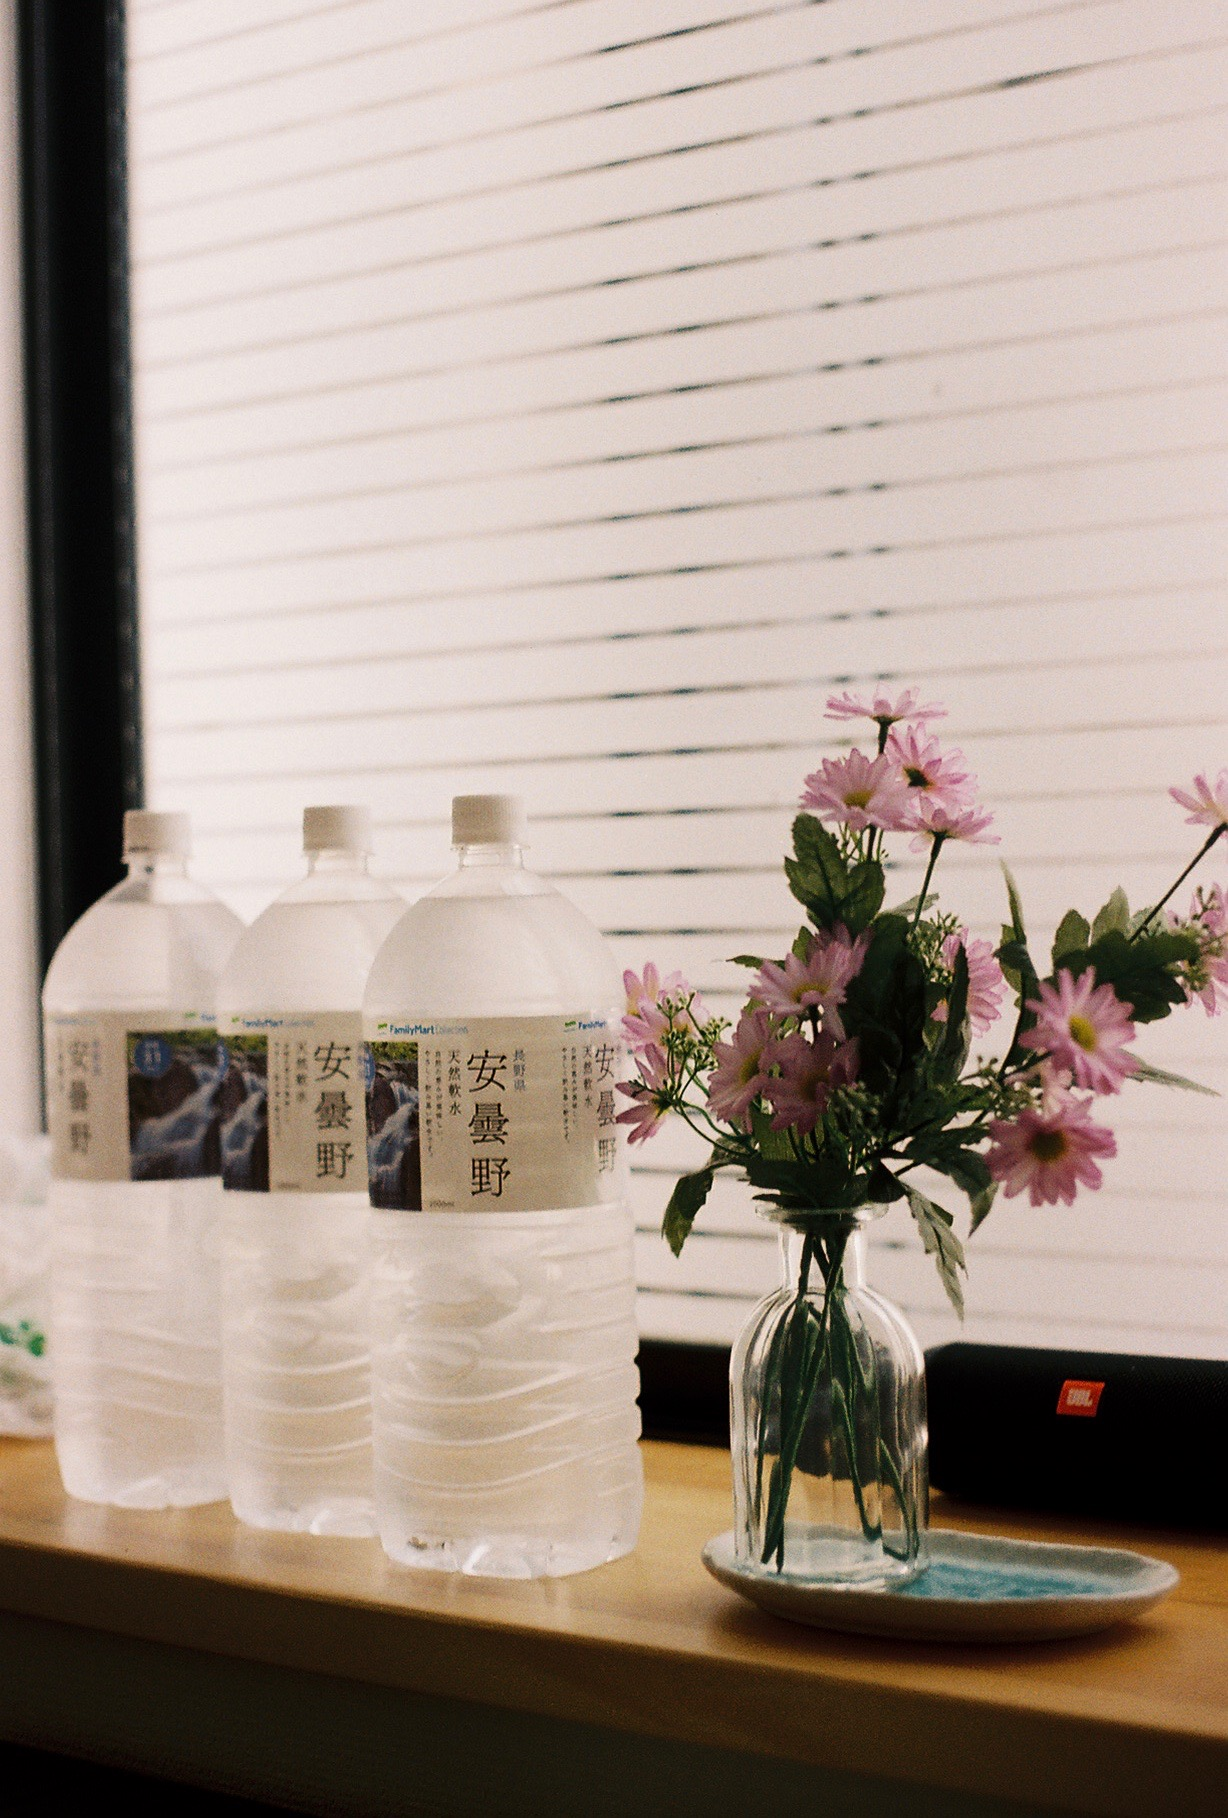 35mm photo of pink flowers in a glass vase placed next to three water bottles in the foreground with Japanese phrases written on them.